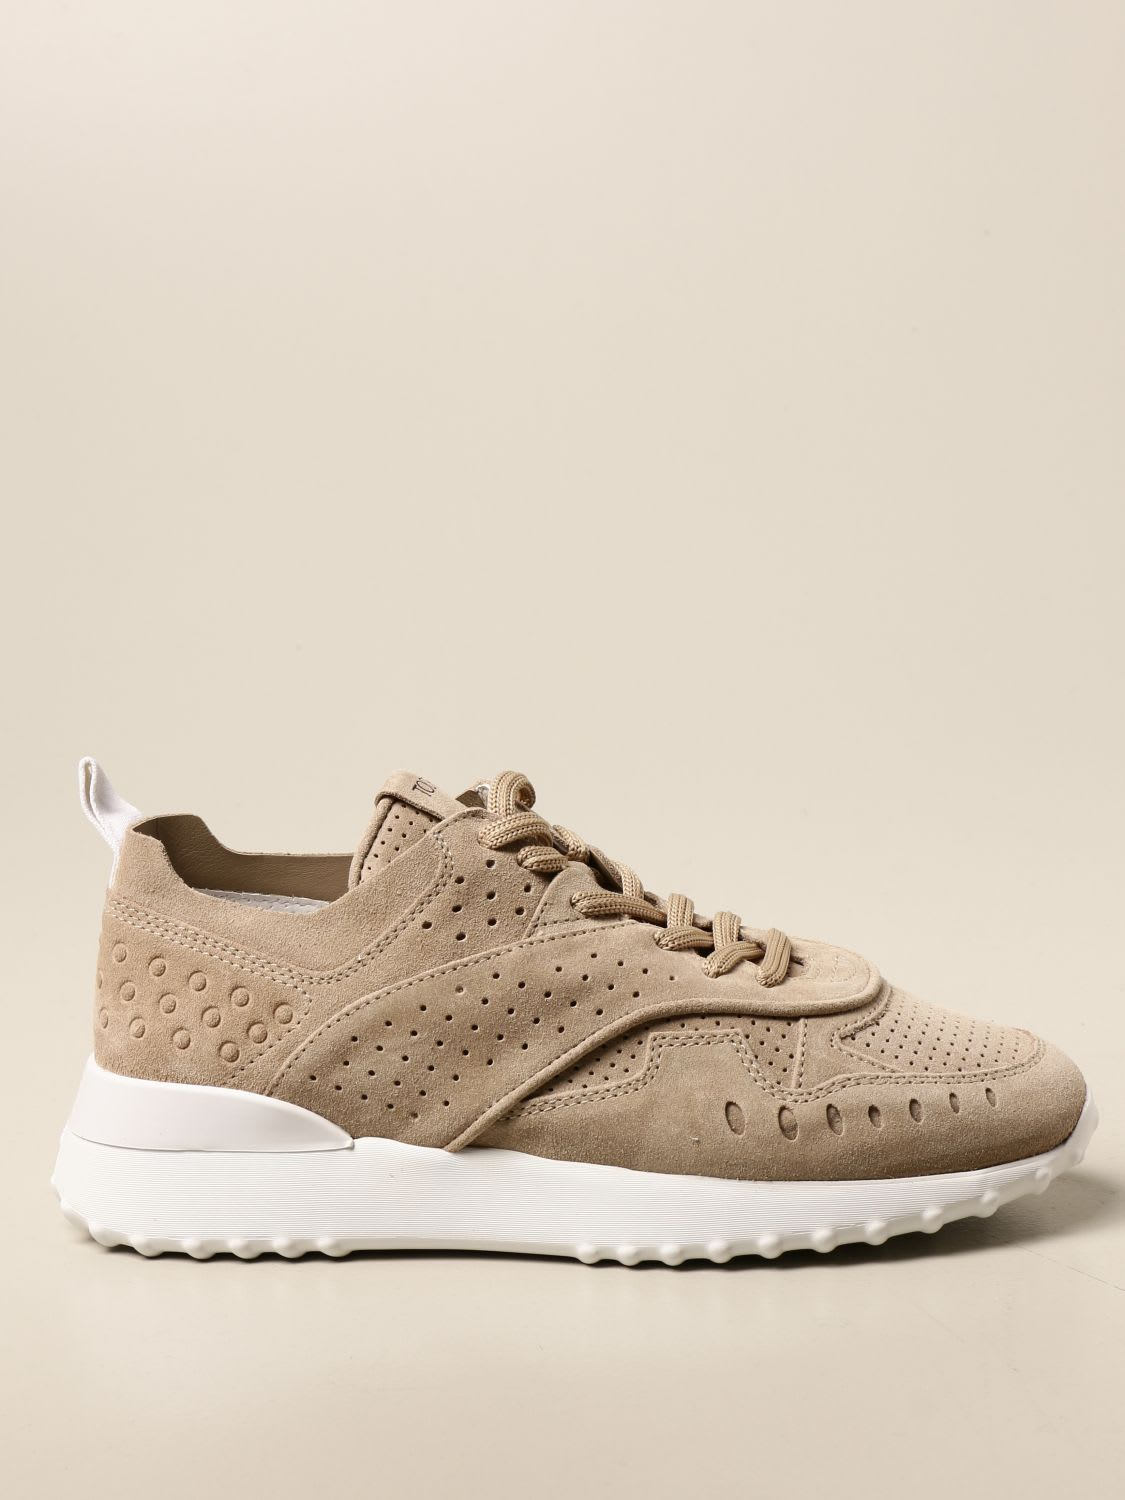 Tods Sneakers Tods Sneakers In Perforated Suede